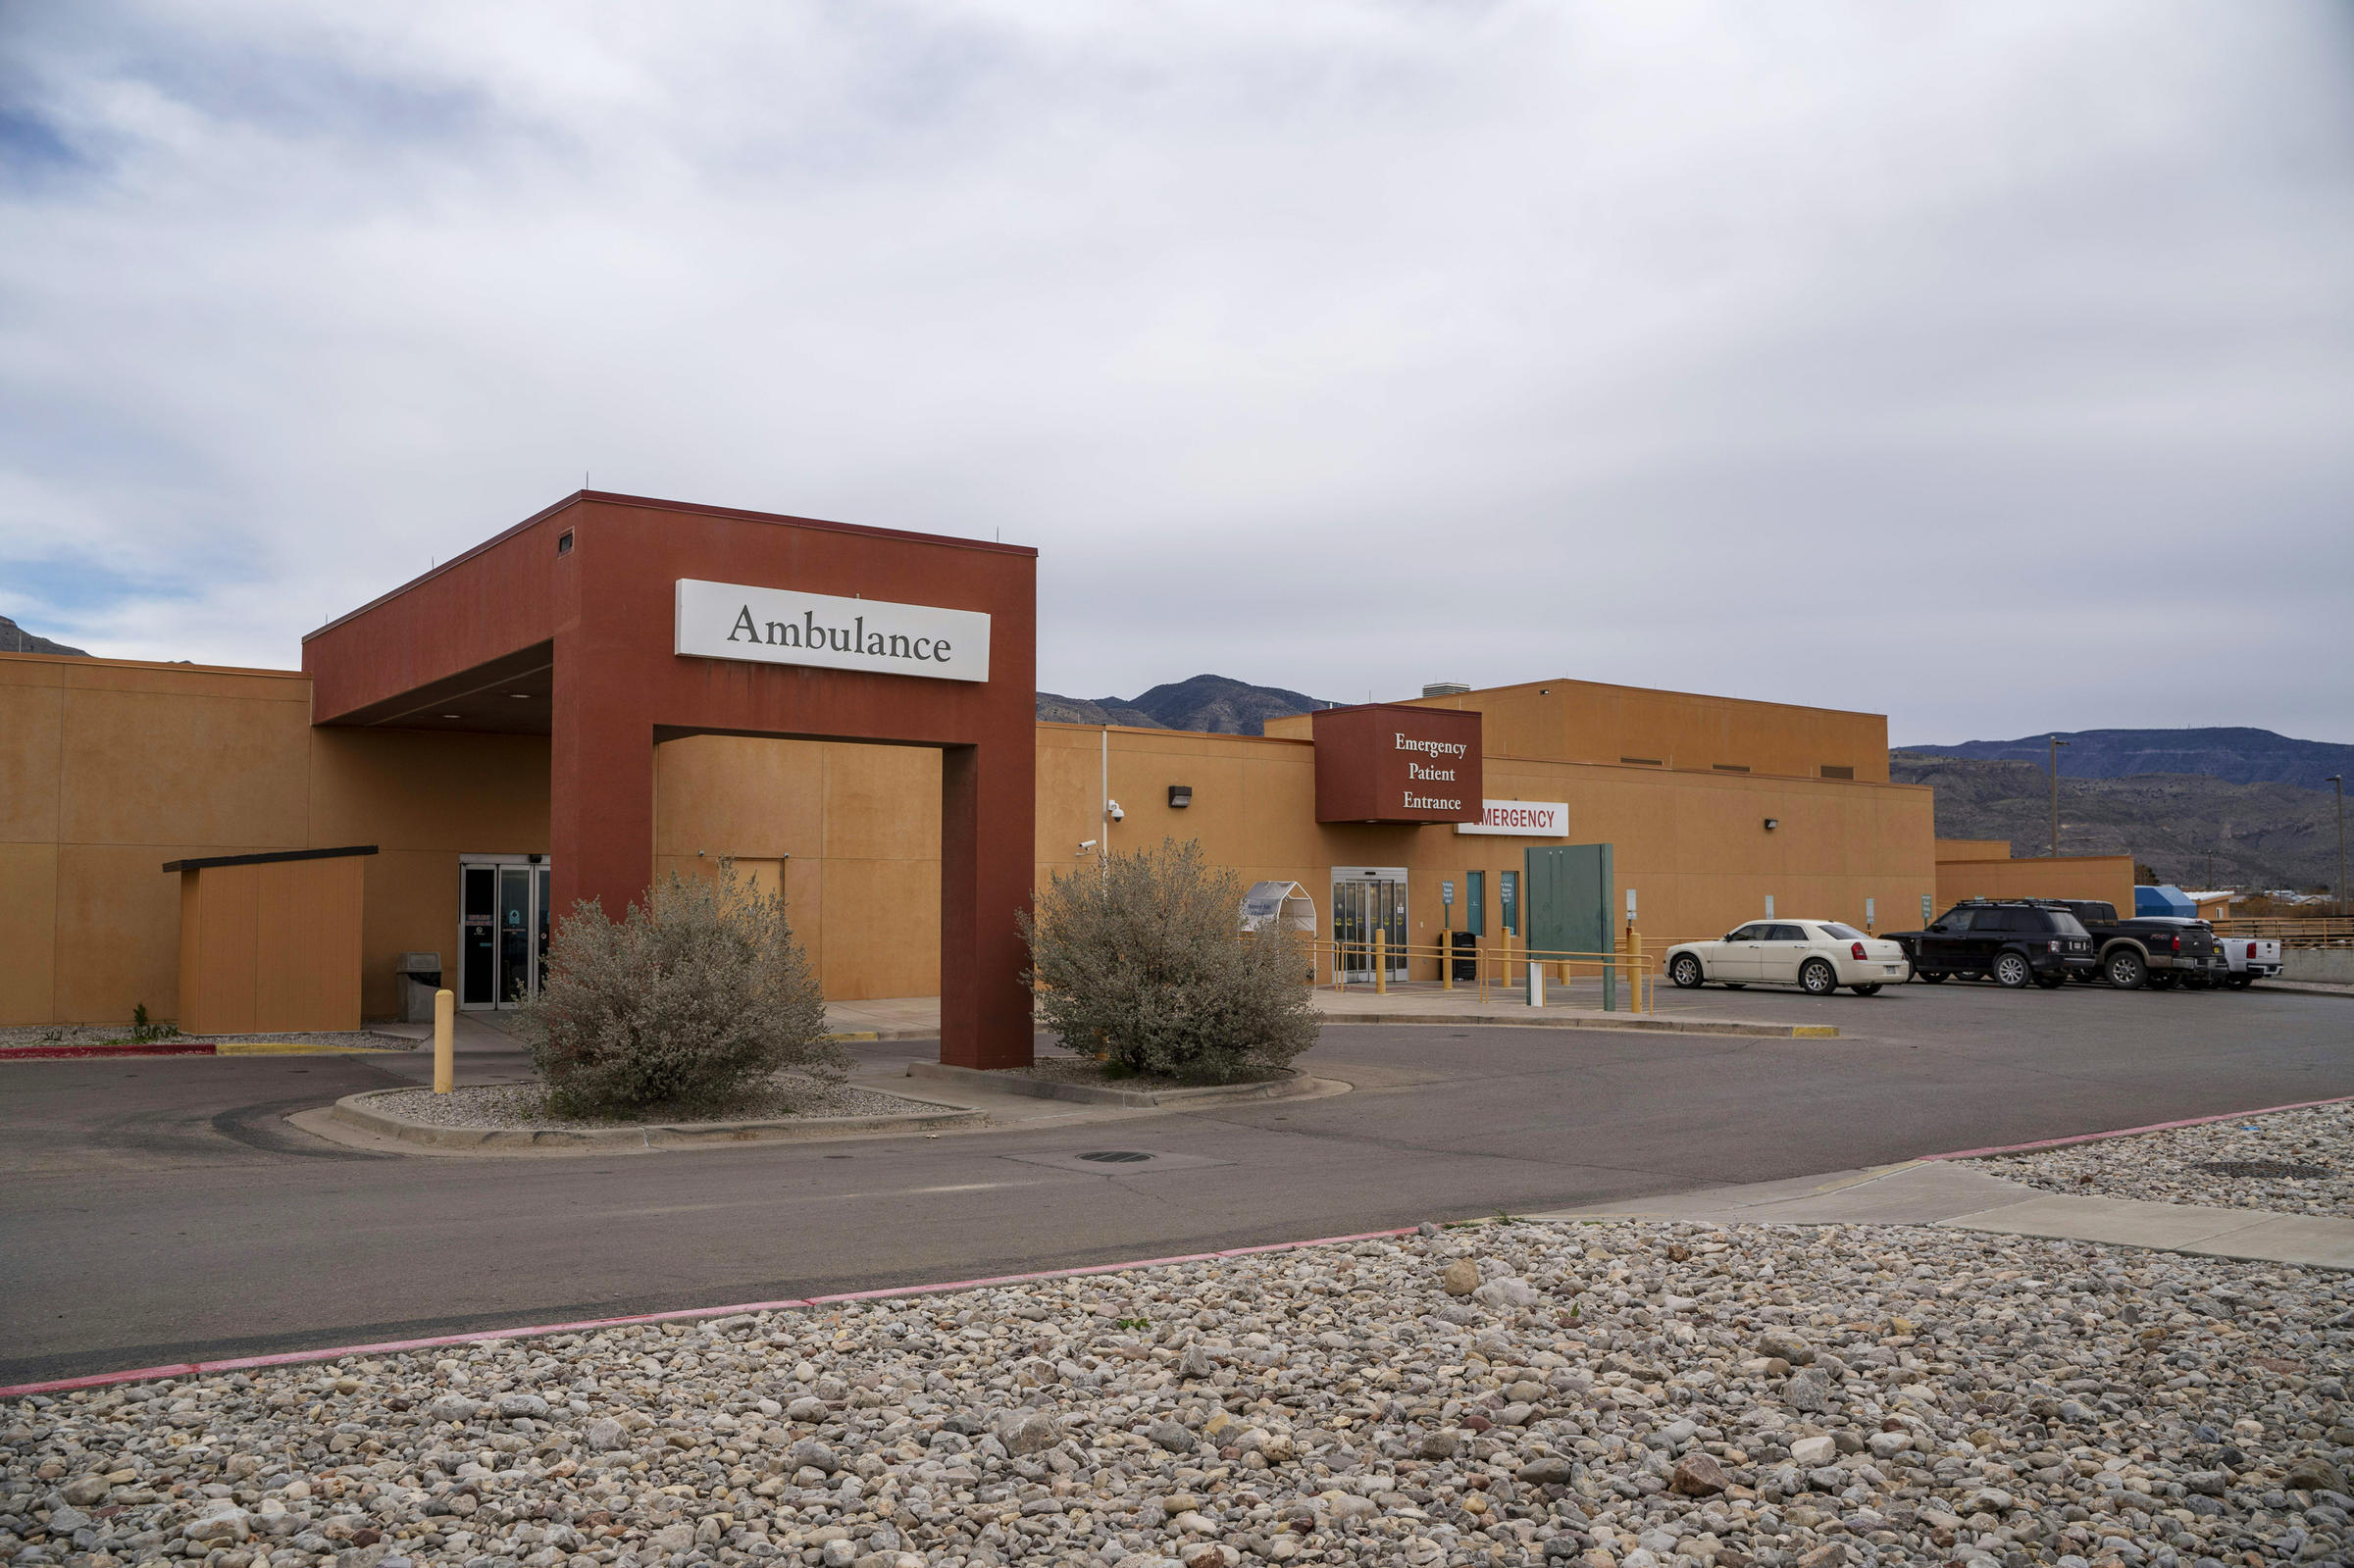 gerald champion regional medical center in alamogordo new mexico where an 8 year old boy from guatemala died in government custody on monday us customs